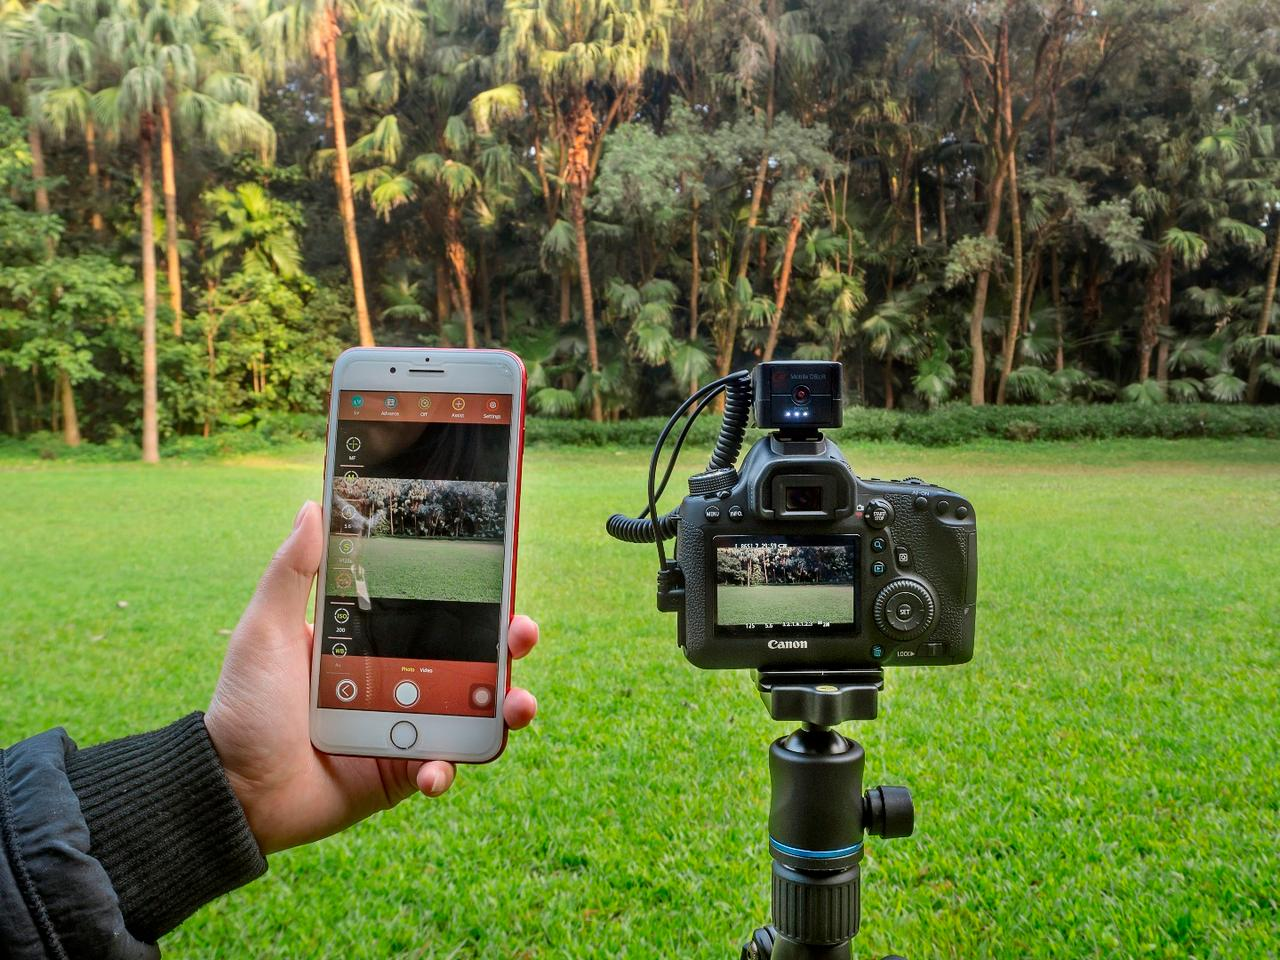 The Aurga app canbe used for full manual control of the camera, to trigger the shutter remotely, and to get HDR (High Dynamic Range) shots